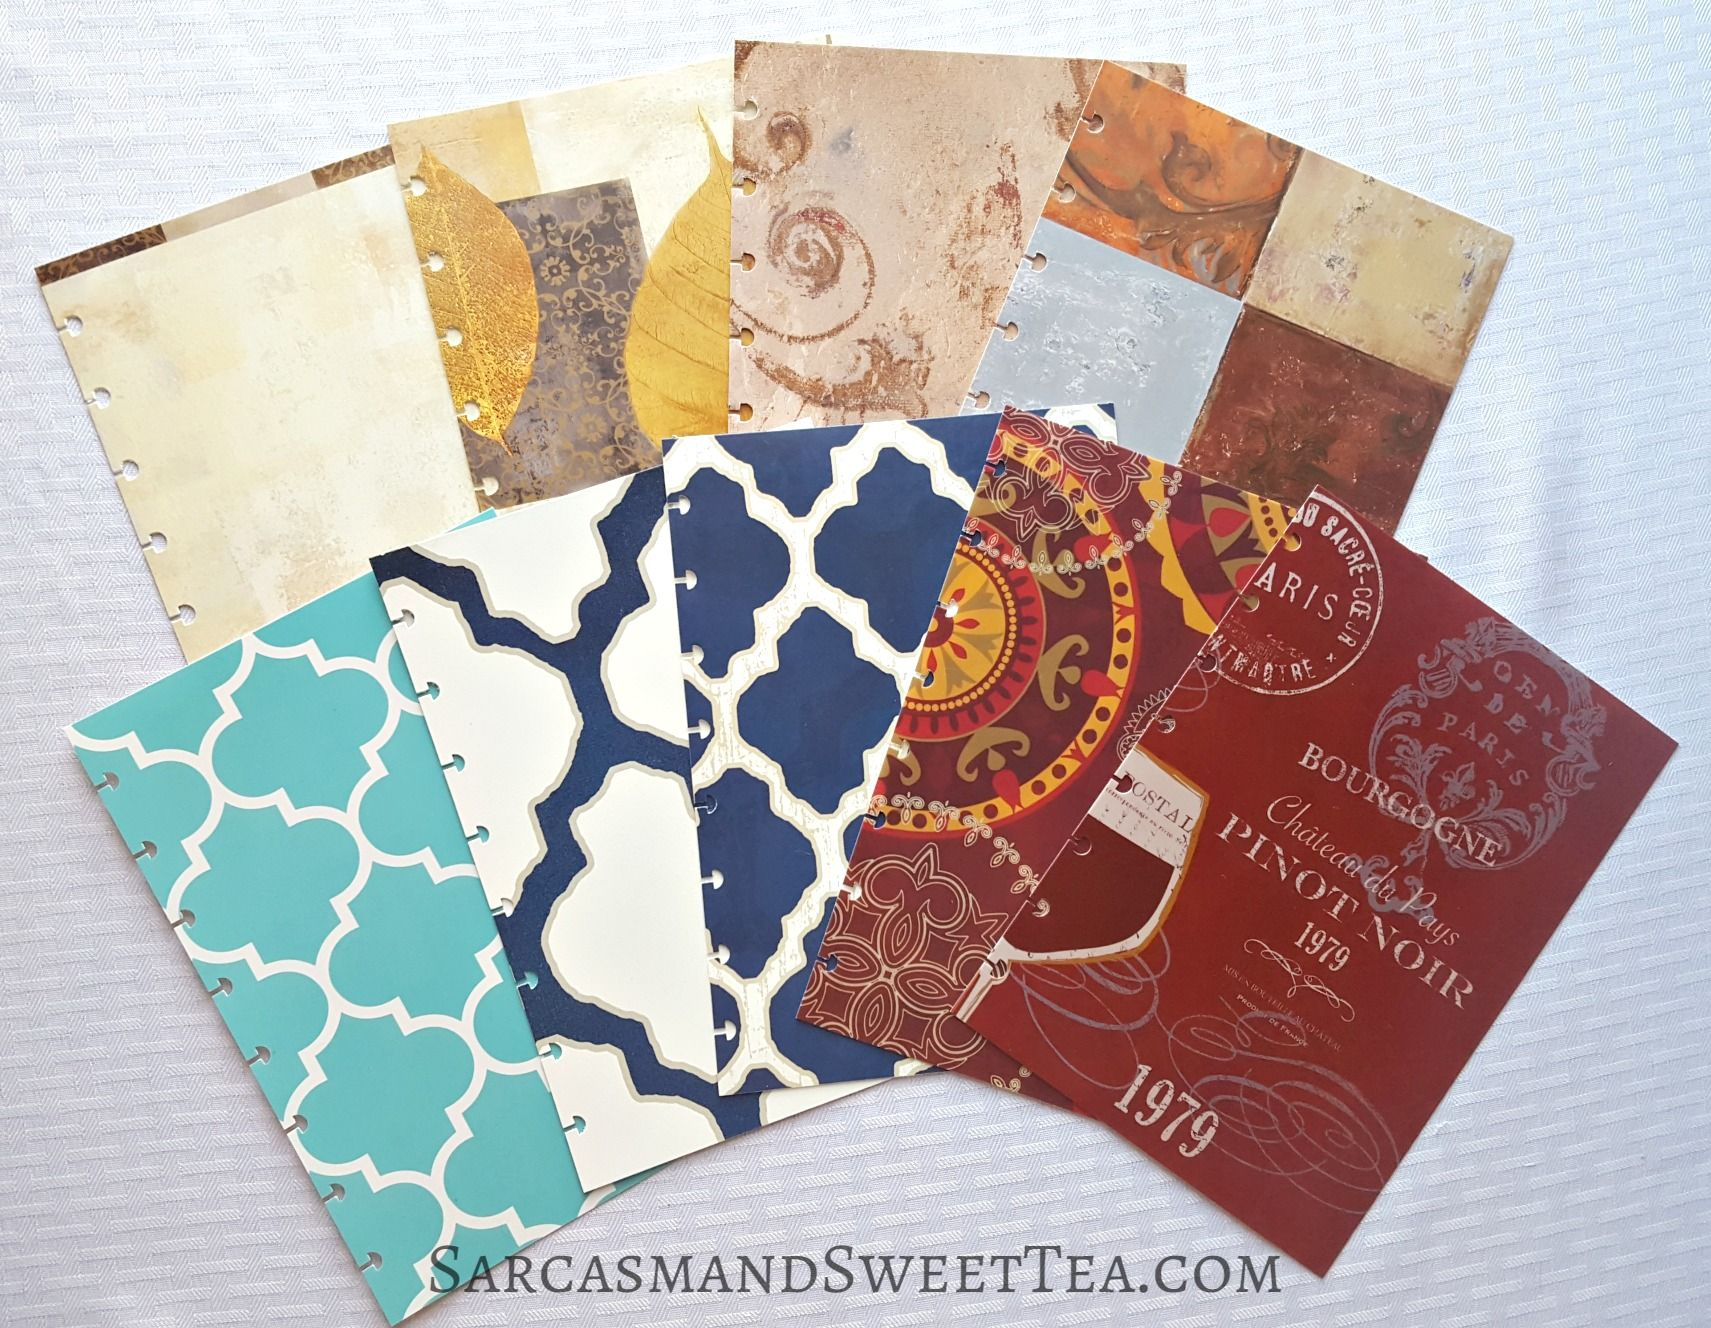 Sarcasm And Sweet Tea Is Closed Indefinitely Planner Covers Diy Diy Planner Planner Cover